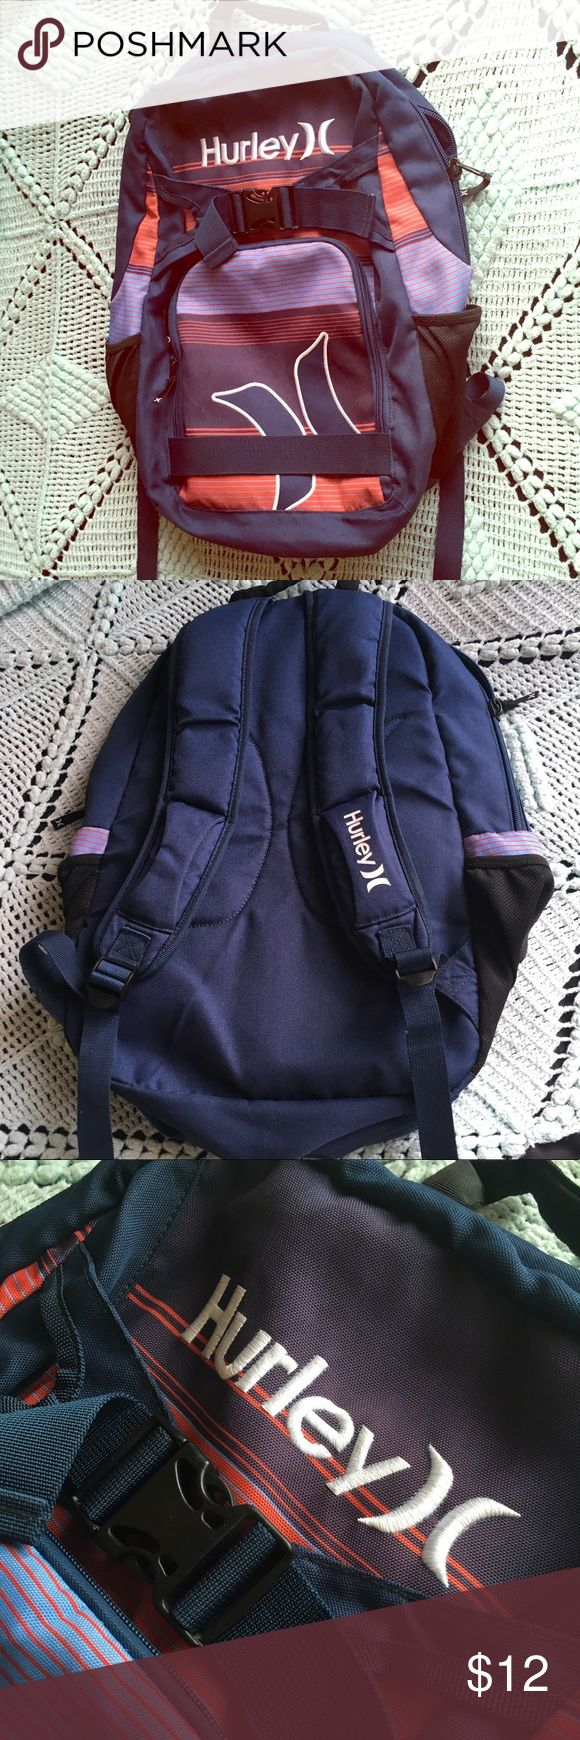 Full Size Hurley Backpack - Used Hurley Backpack - Features Front Zipper Pocket - One Large Main Compartment - Cup Holders on Outside  NOTE: There is a rip along the top of a pocket in the main compartment. I thought to cut out that pocket completely, but I left the Backpack AS IS, in case one of you are skilled at sewing. It is a pretty easy fix. Overall still a great quality product! Hurley Bags Backpacks